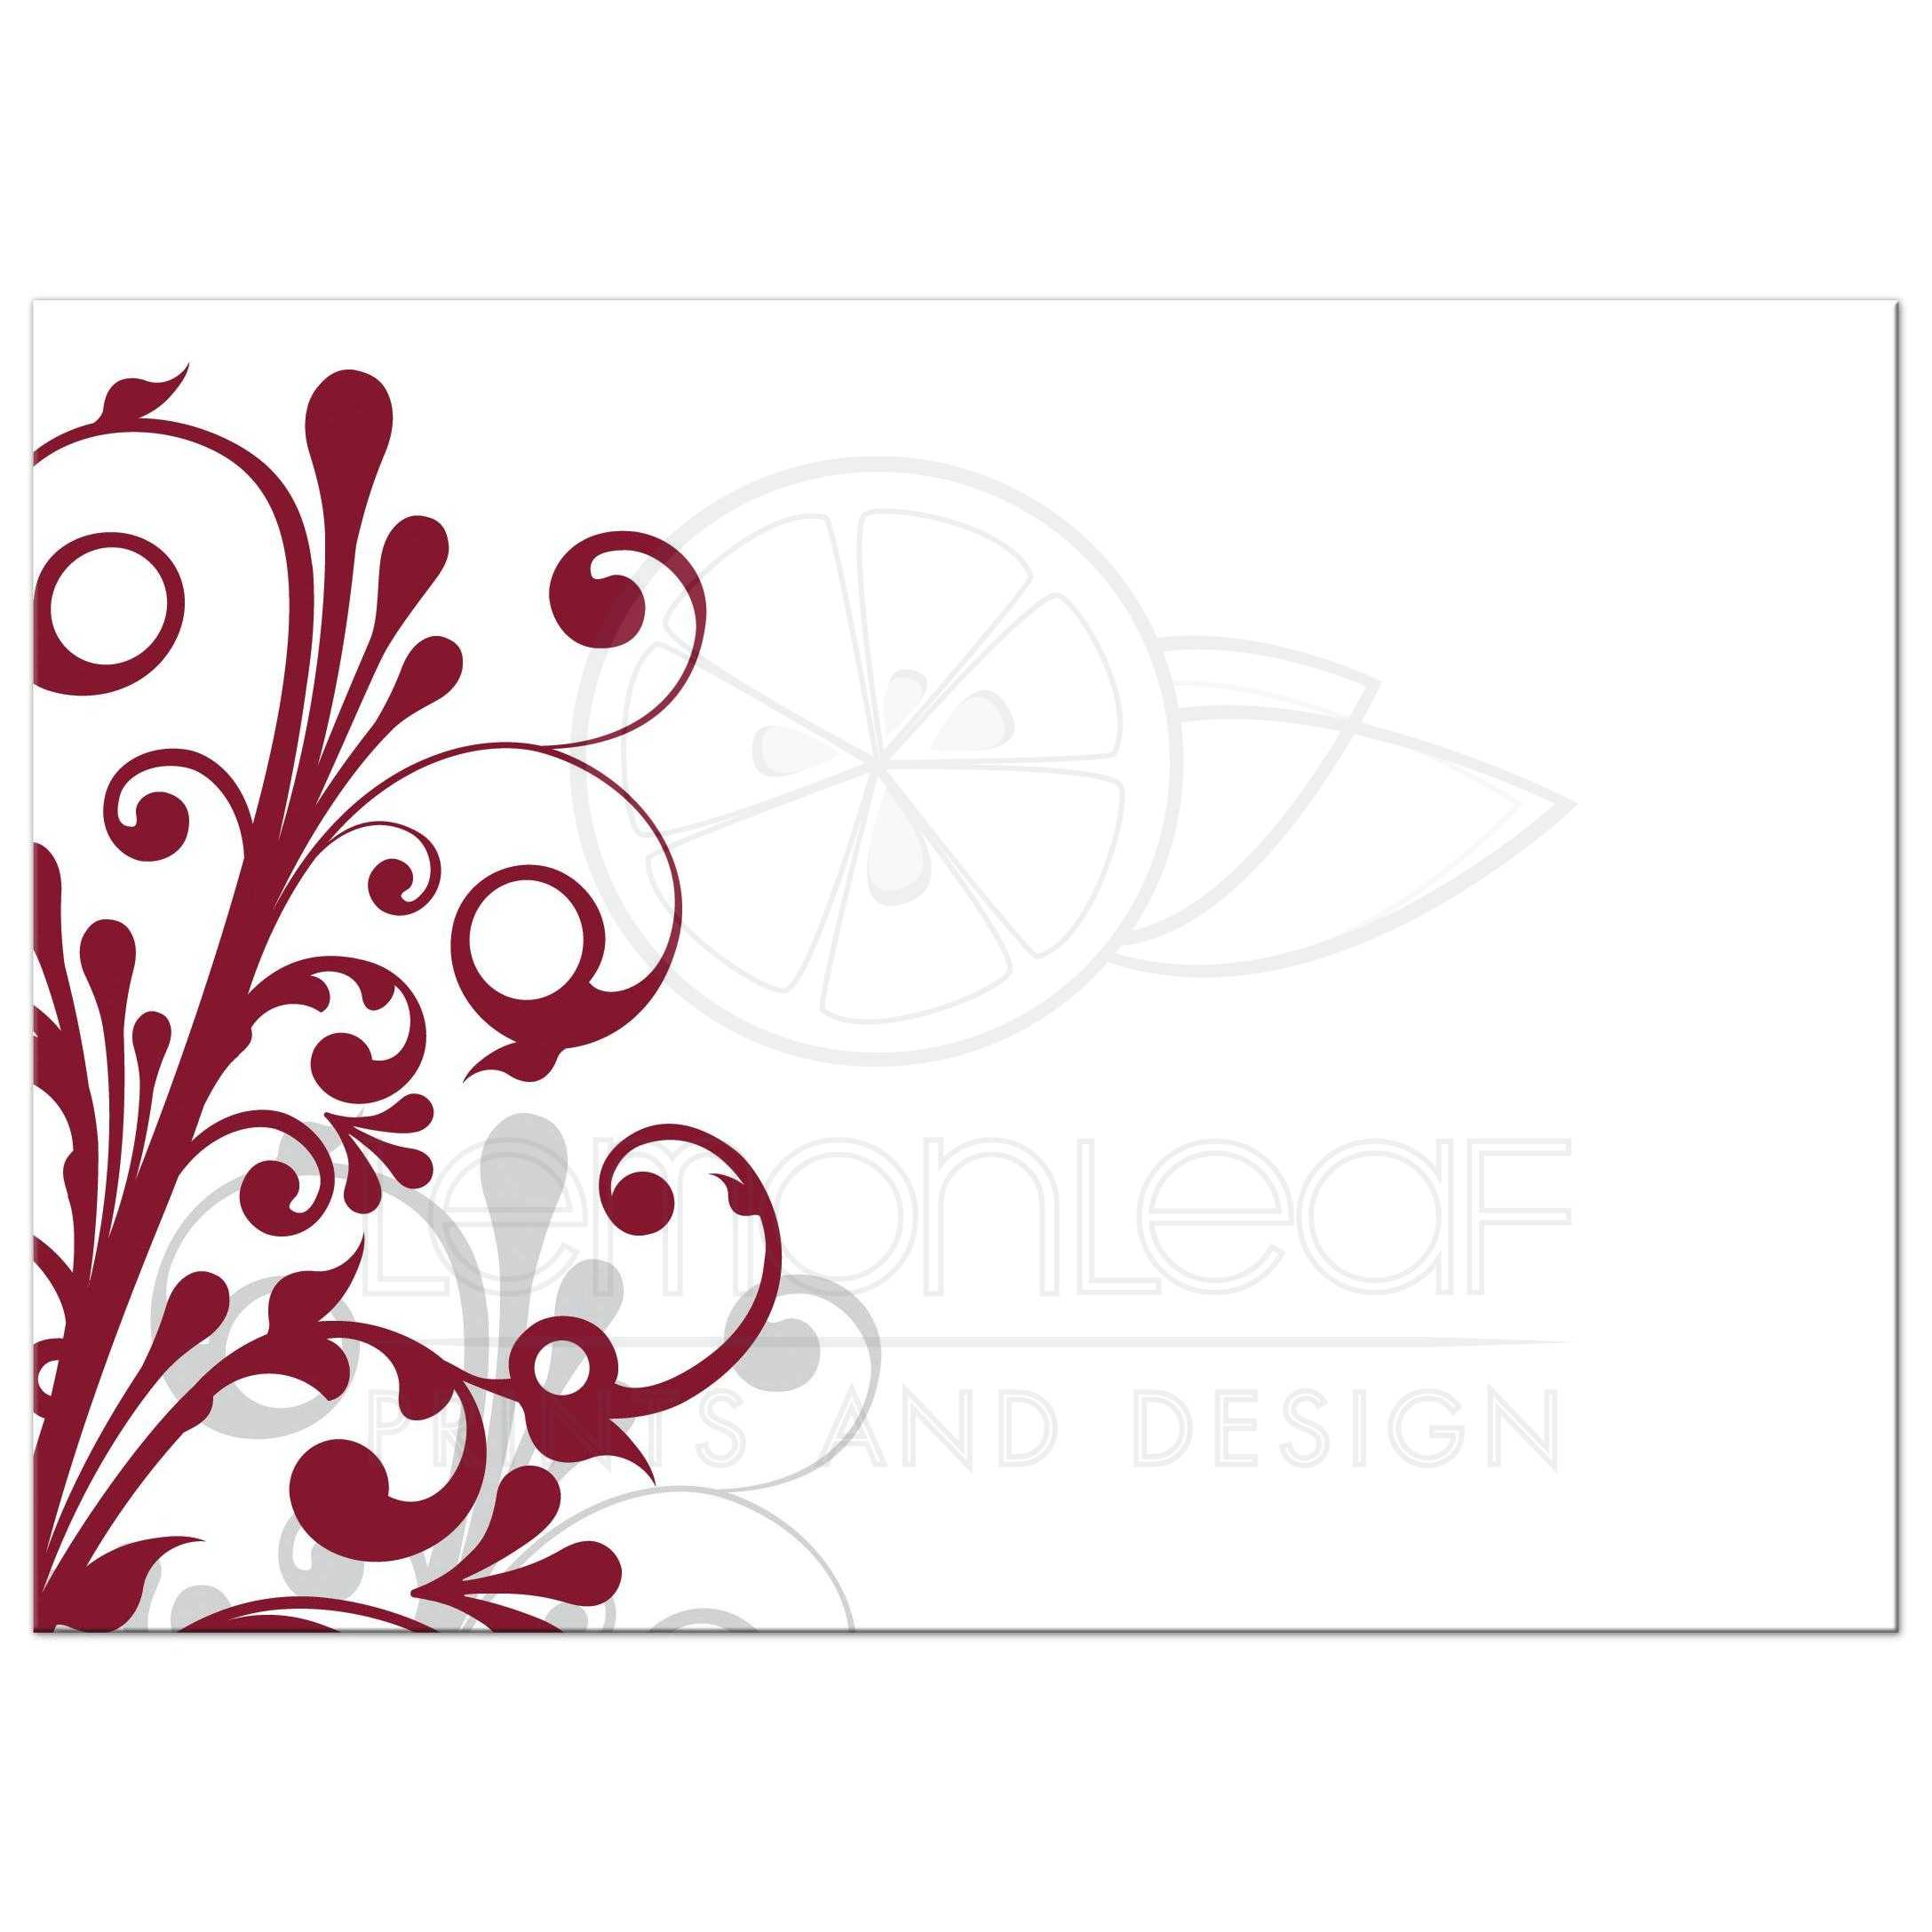 ... Burgundy, Gray And White Abstract Floral Wedding Invitation Back ...